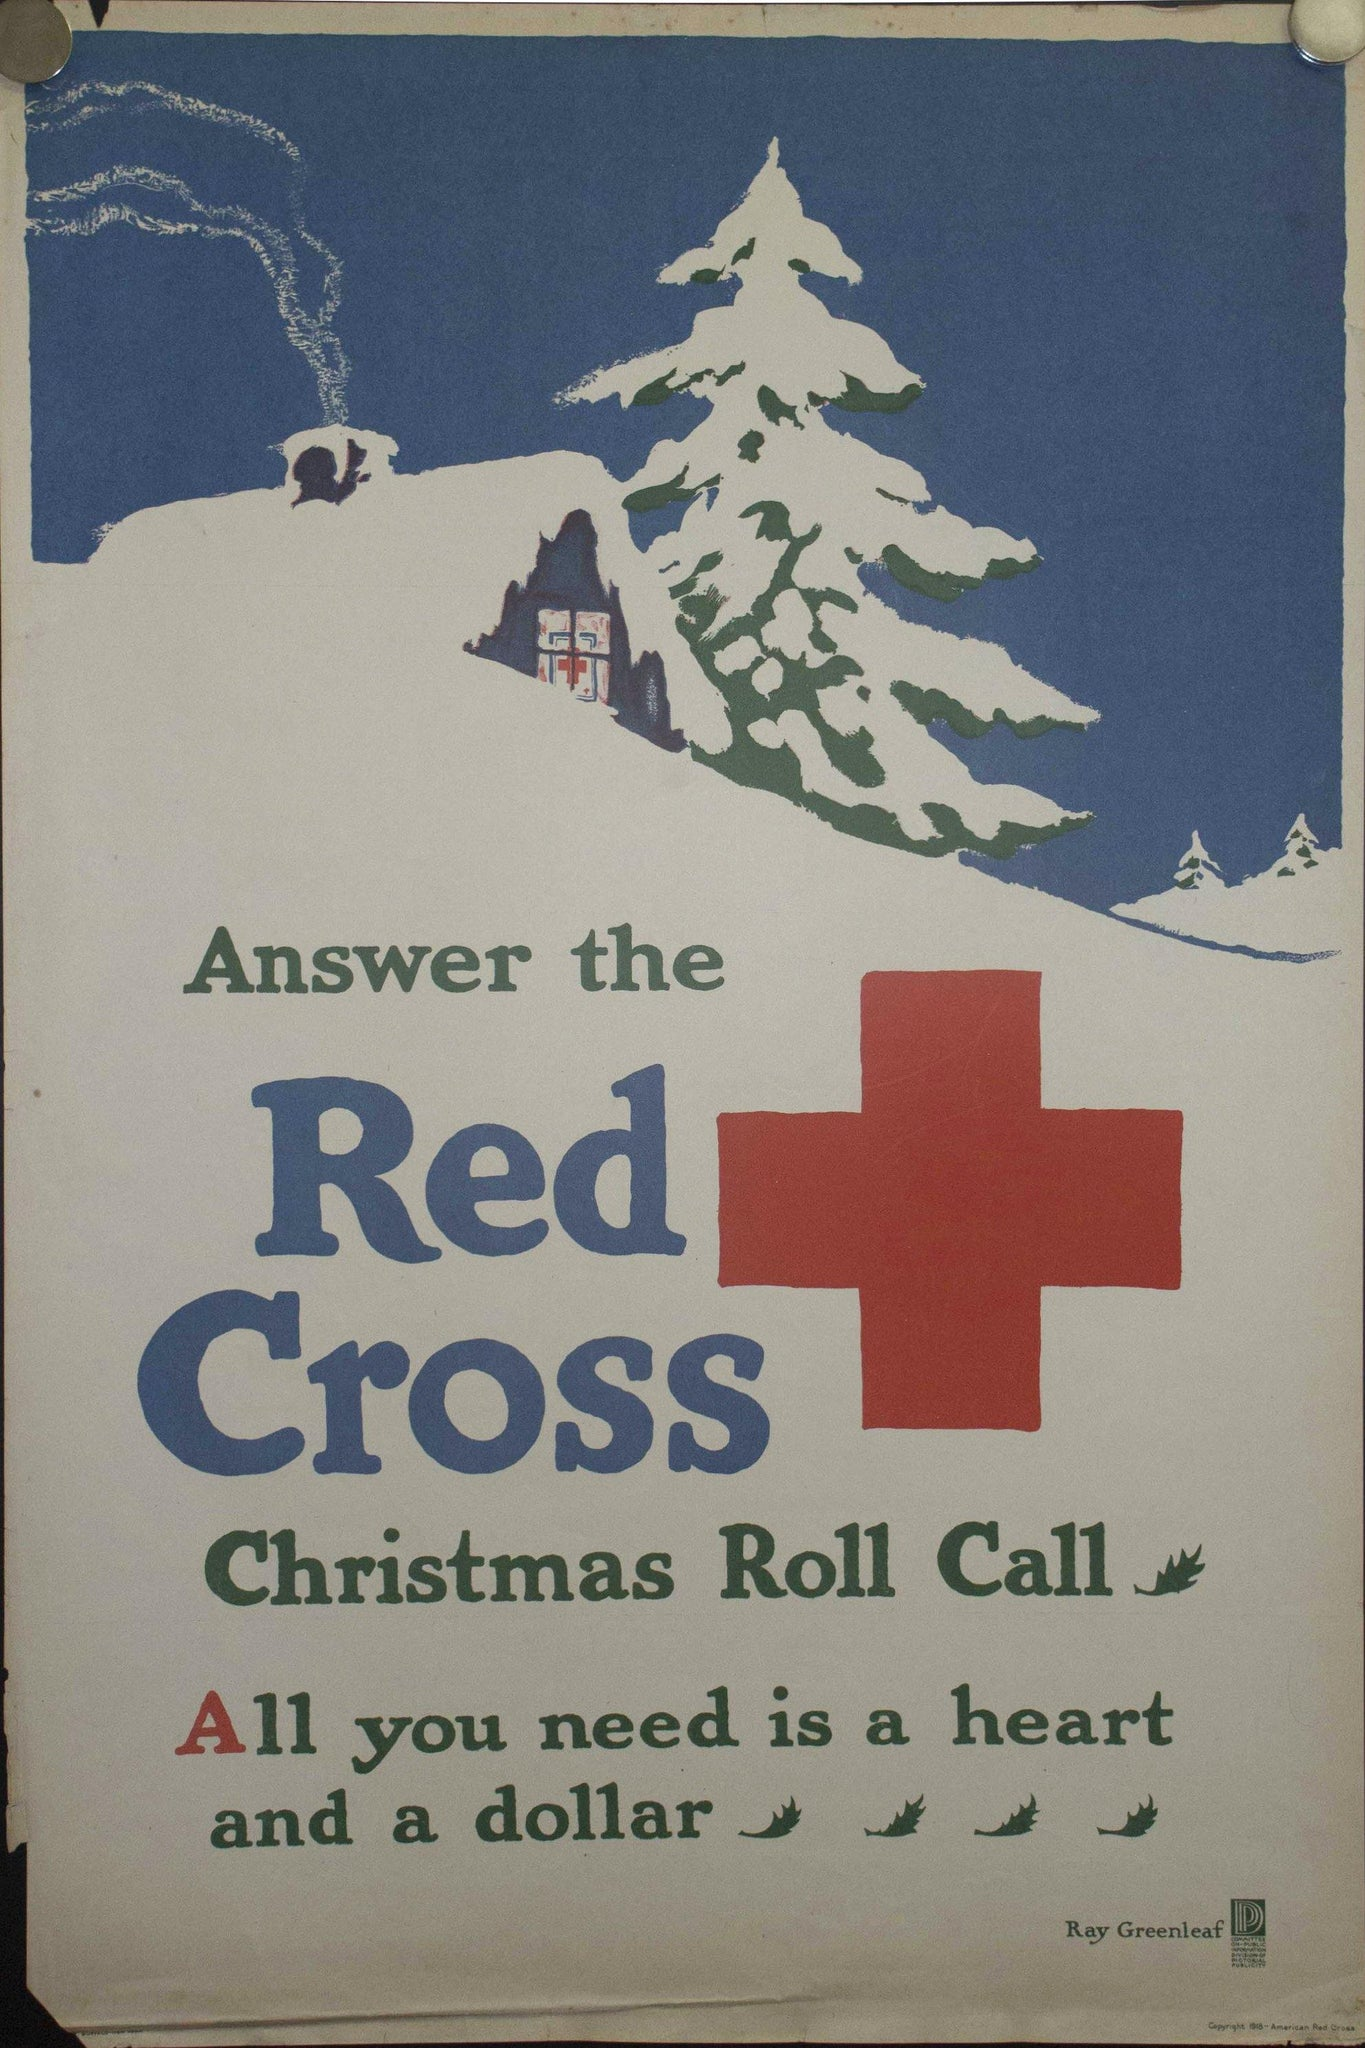 1918 Answer the Red Cross Christmas Roll Call by Ray Greenleaf